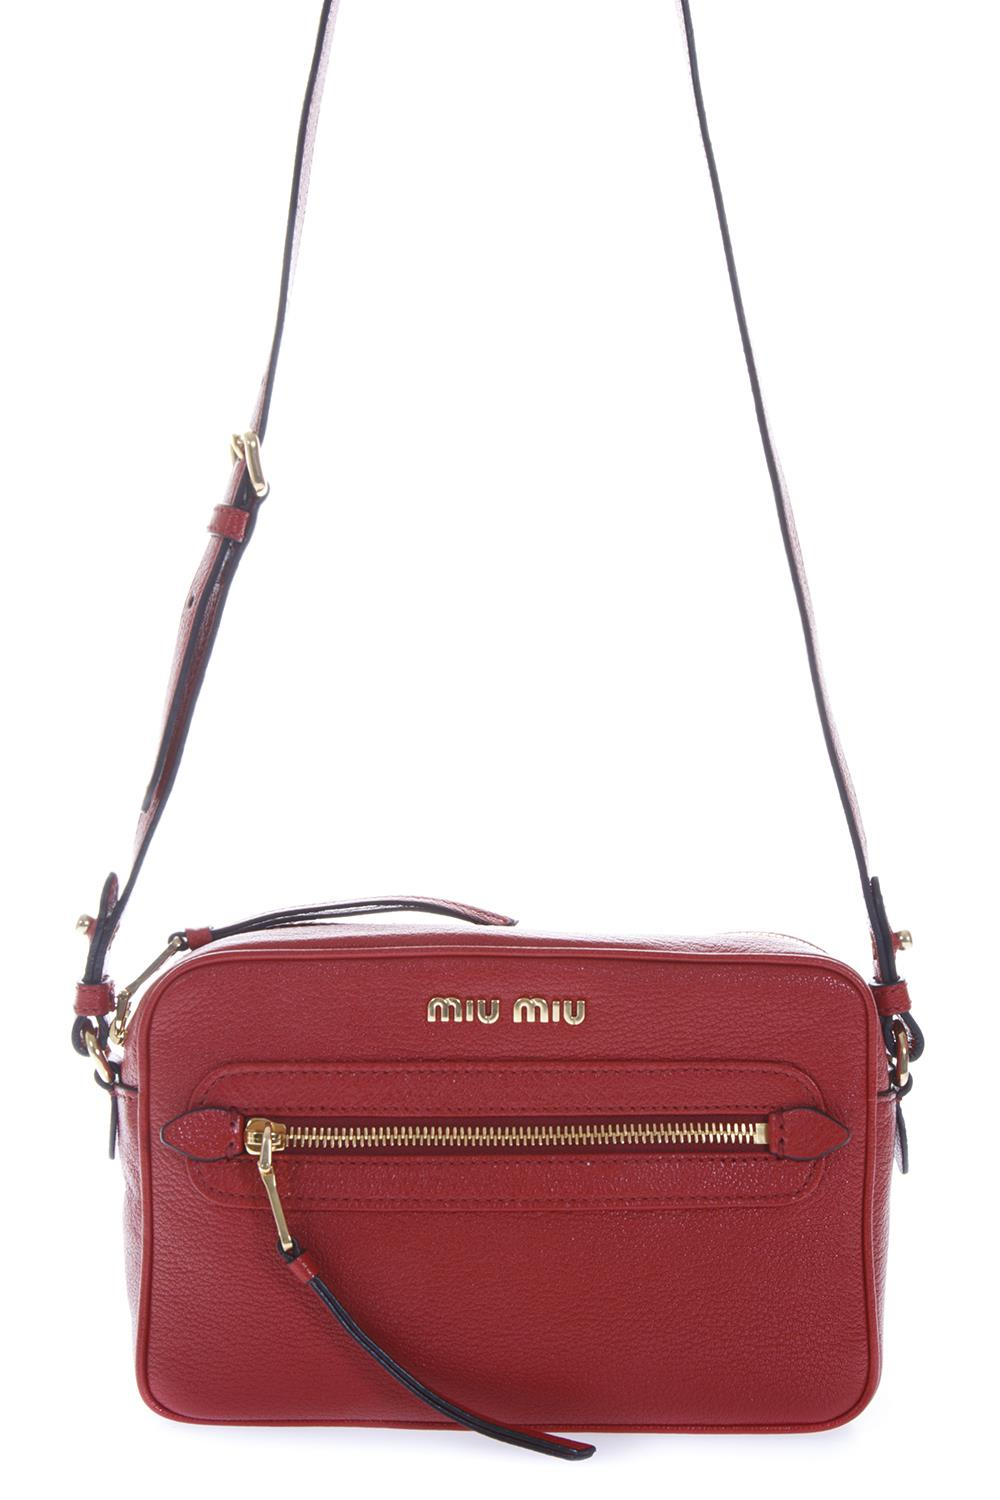 RED LEATHER CAMERA BAG FW 2018 - MIU MIU - Boutique Galiano ed8656611a4ed